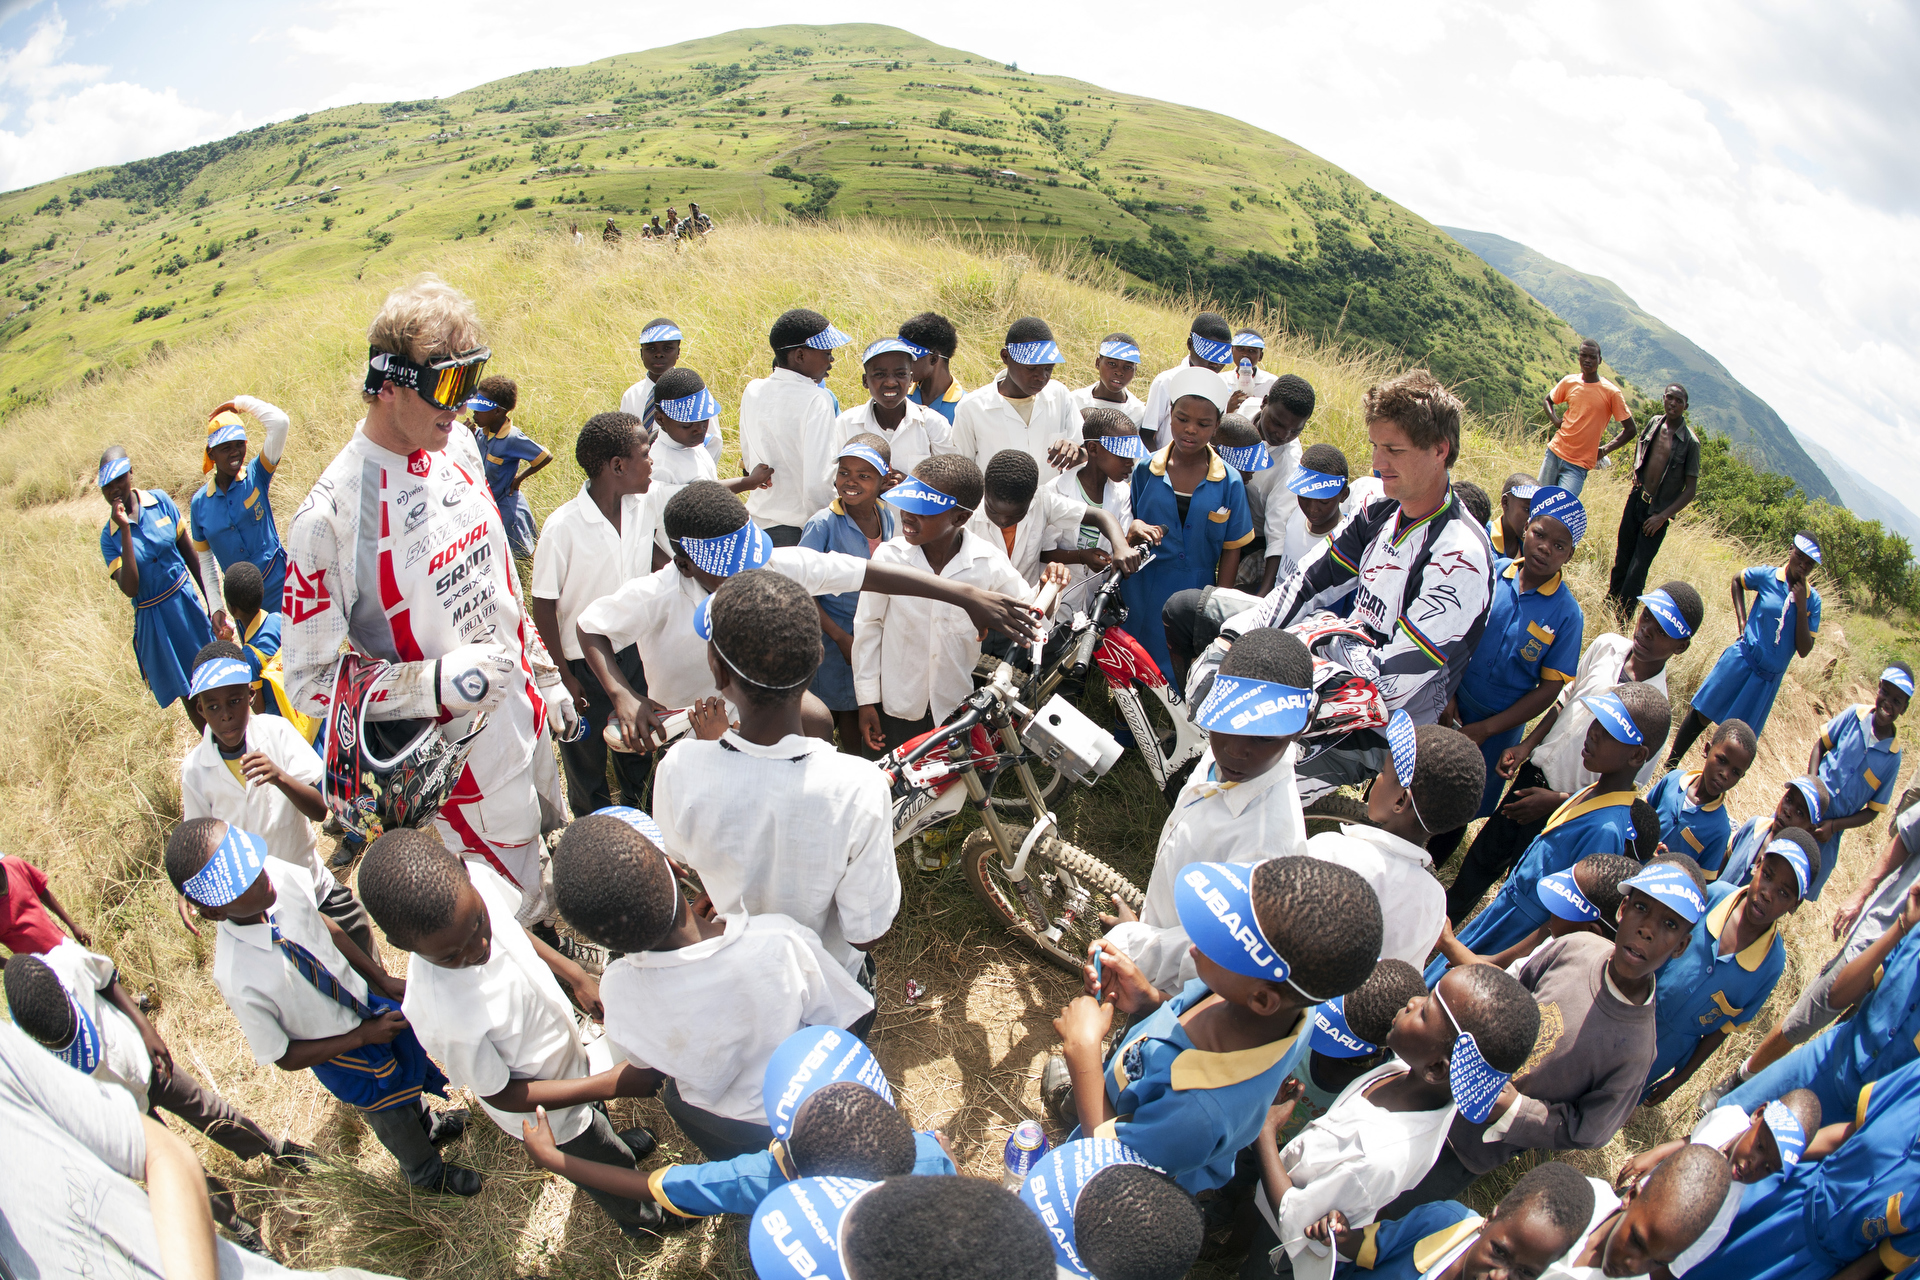 Steve Peat and Greg Minnaar surrounded by kids from the Msayana School in the Umkomaas Valley.